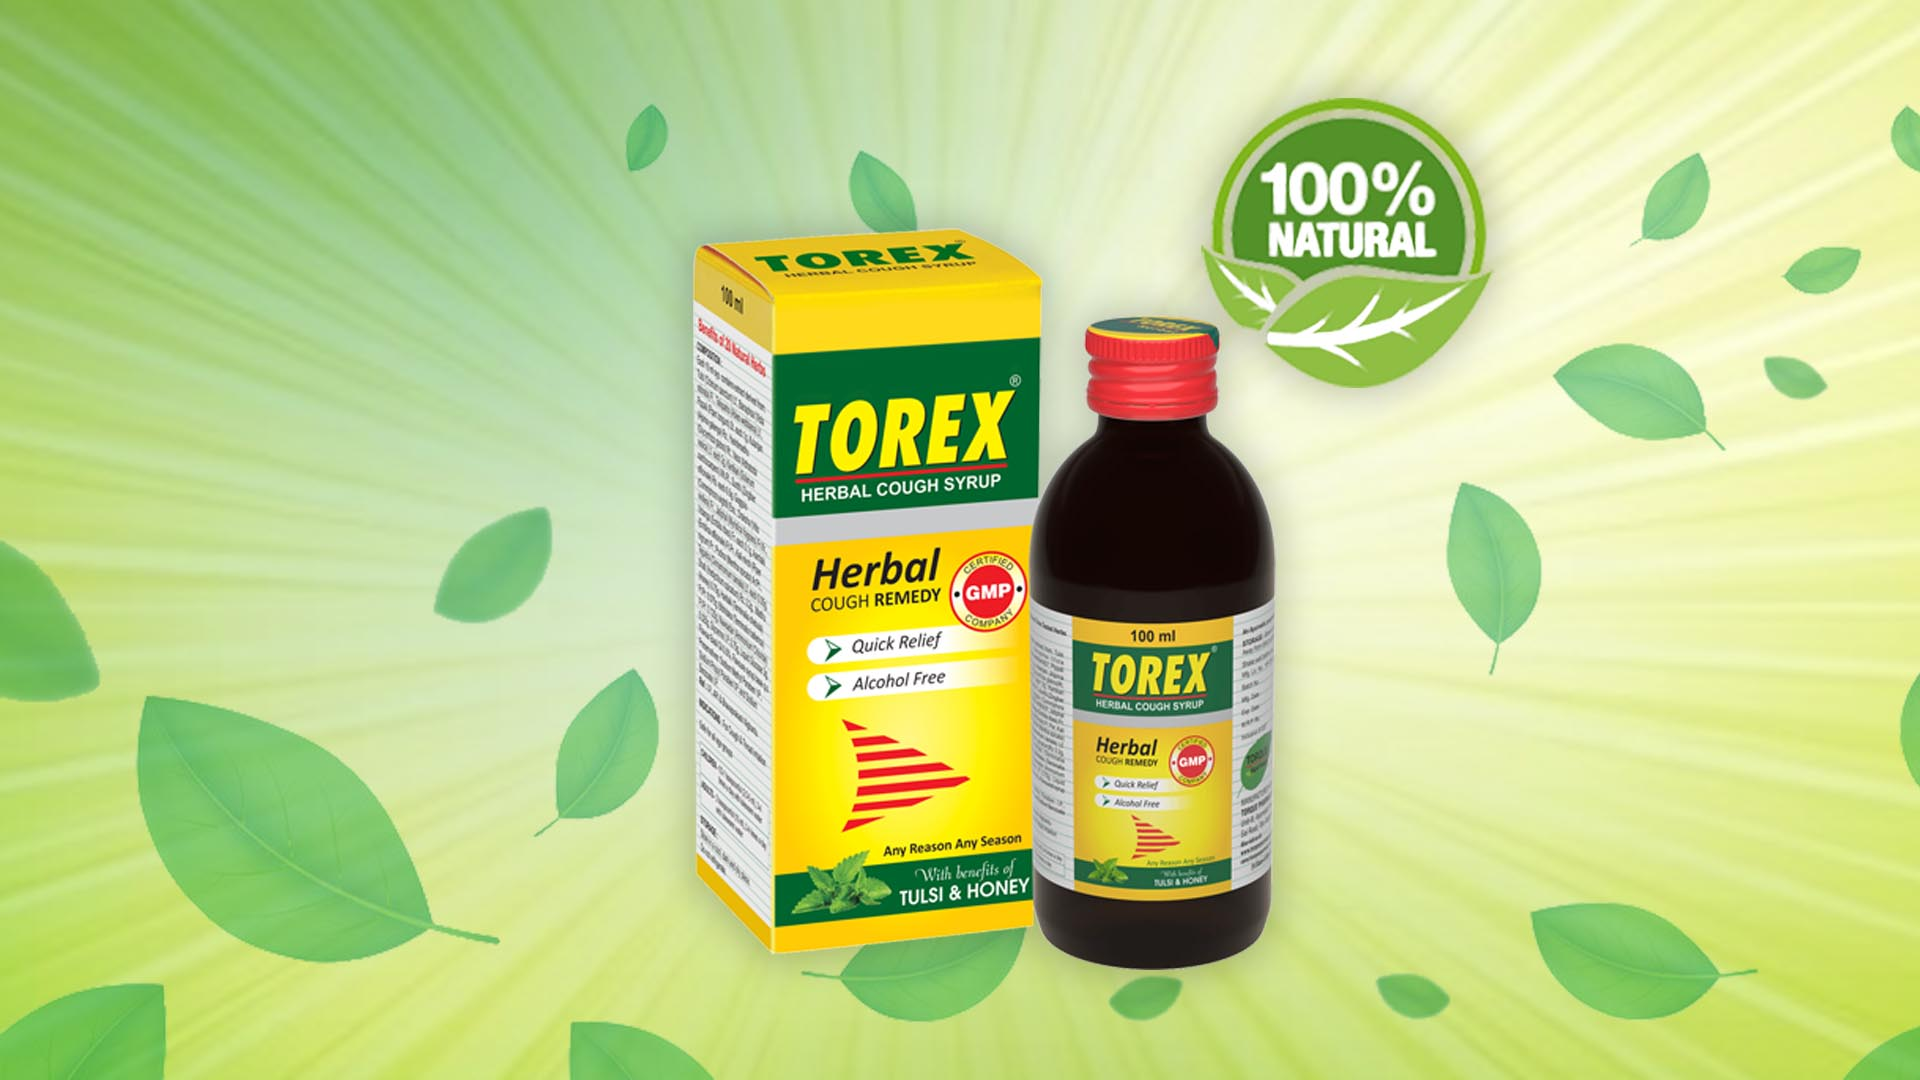 torex cough syrup benefits